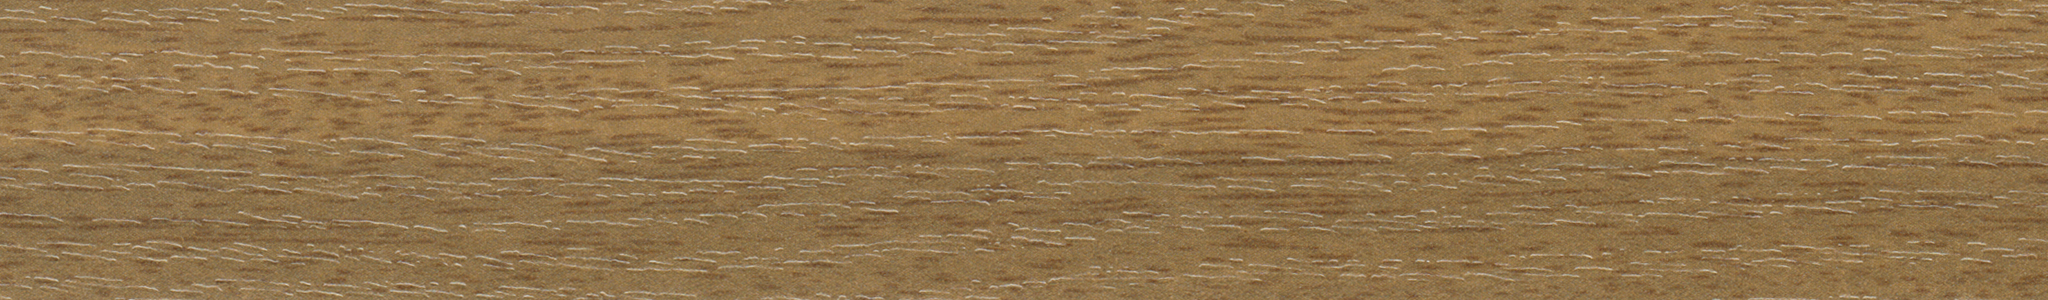 HD 48364 Melamine Edge Walnut Pore